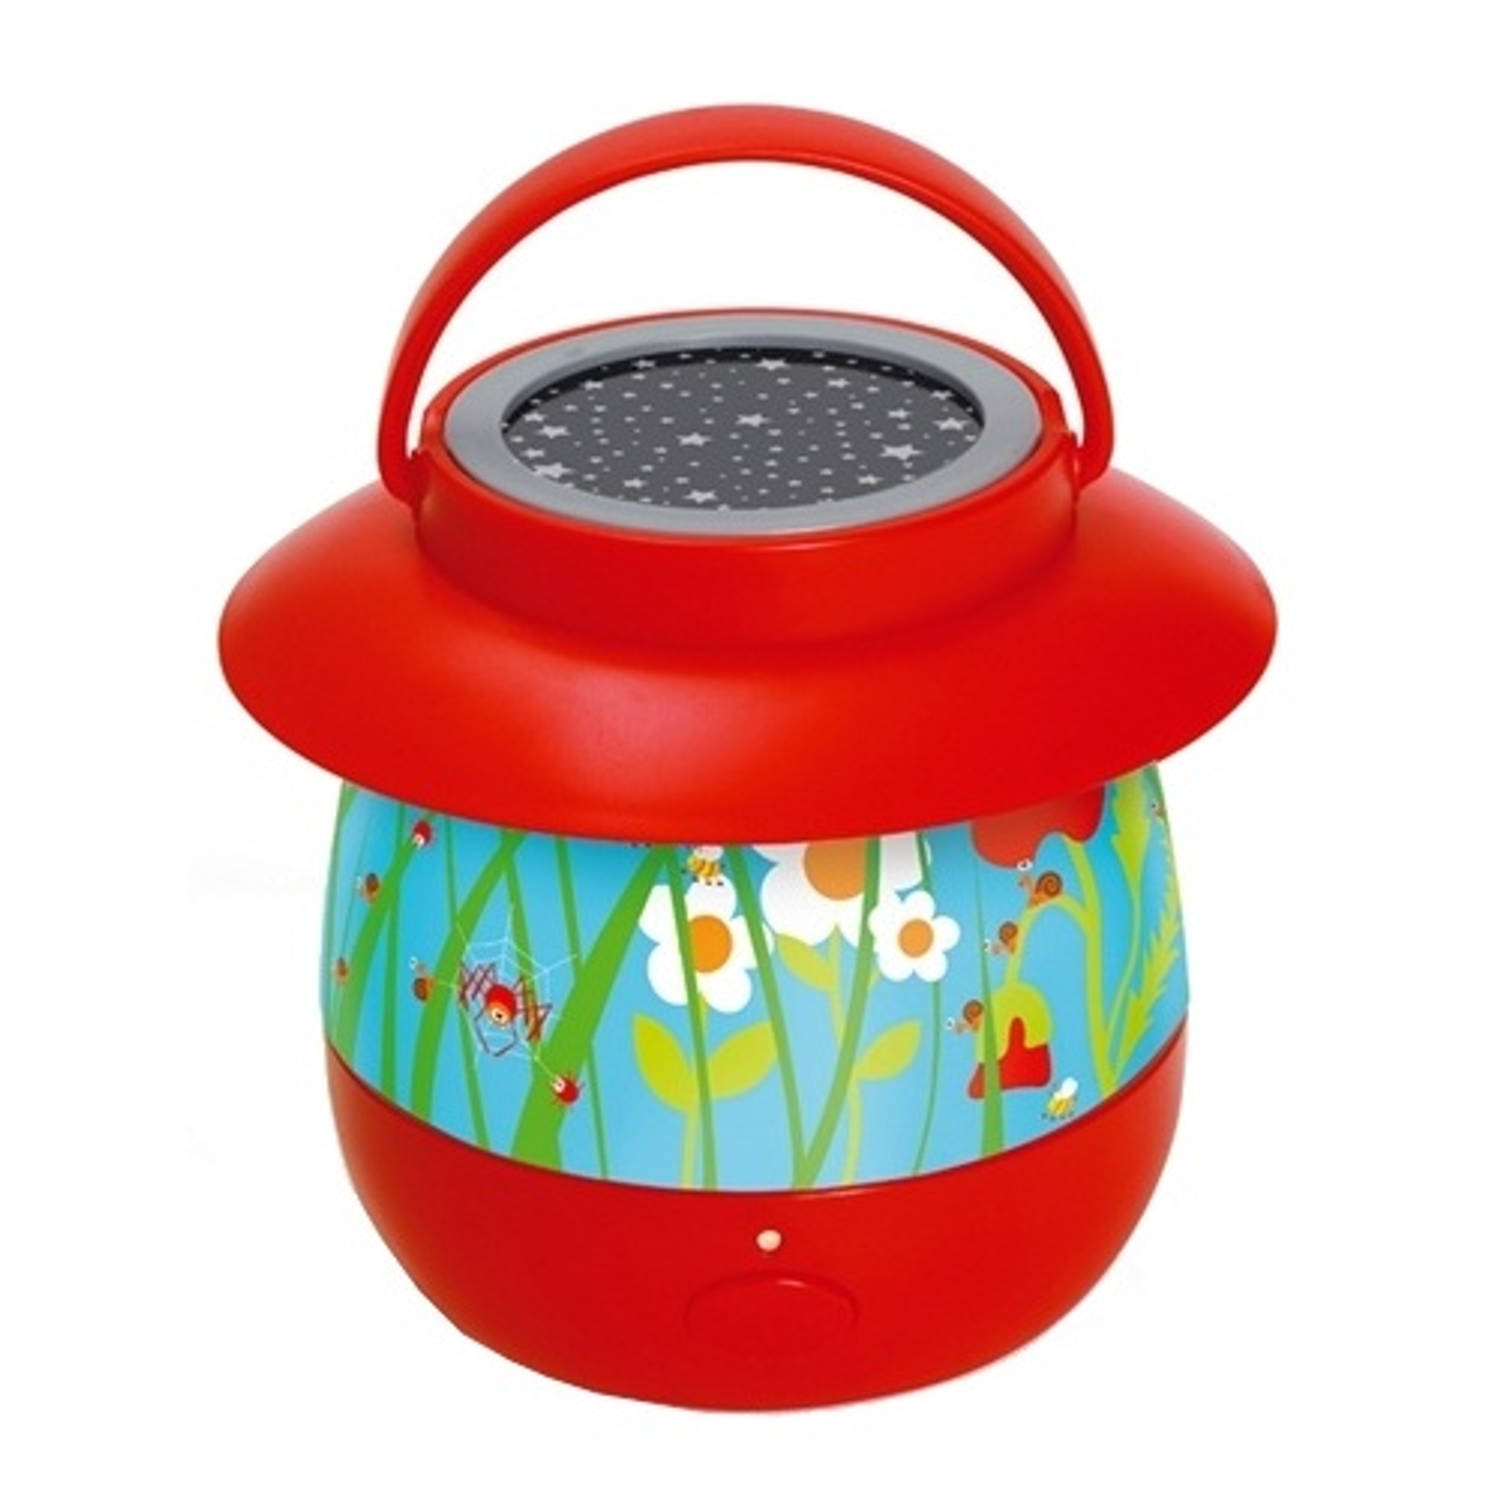 Scratch nachtlamp Circus junior rood 14 x 12,7 cm